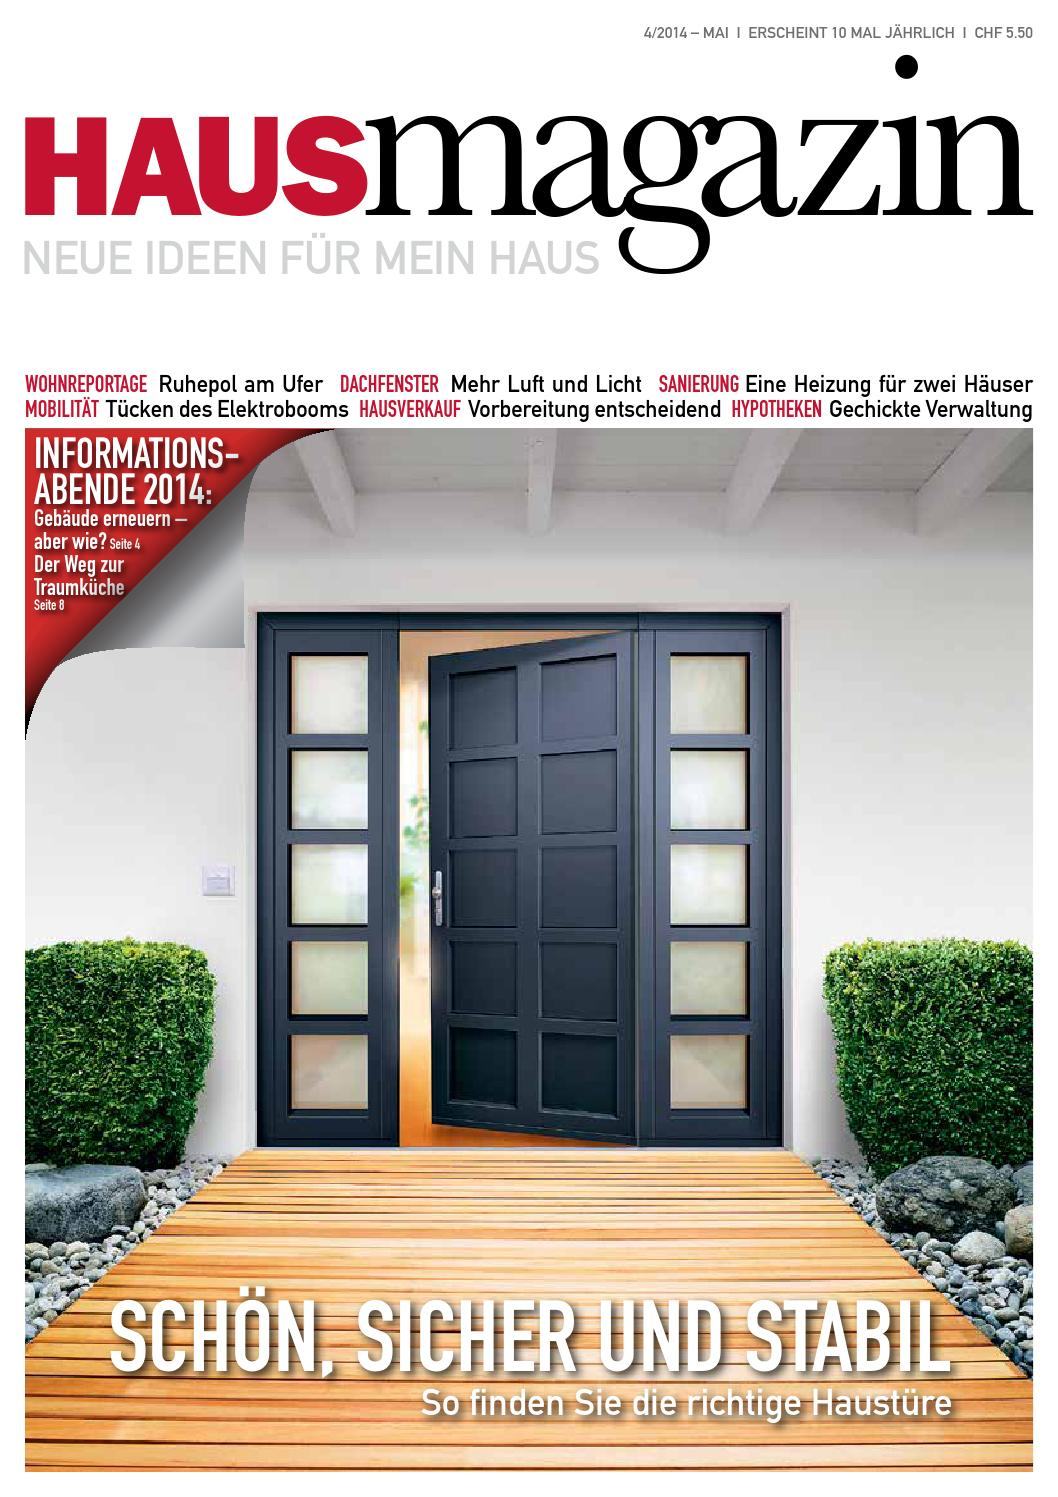 Hausmagazin mai 2014 by haus magazin issuu